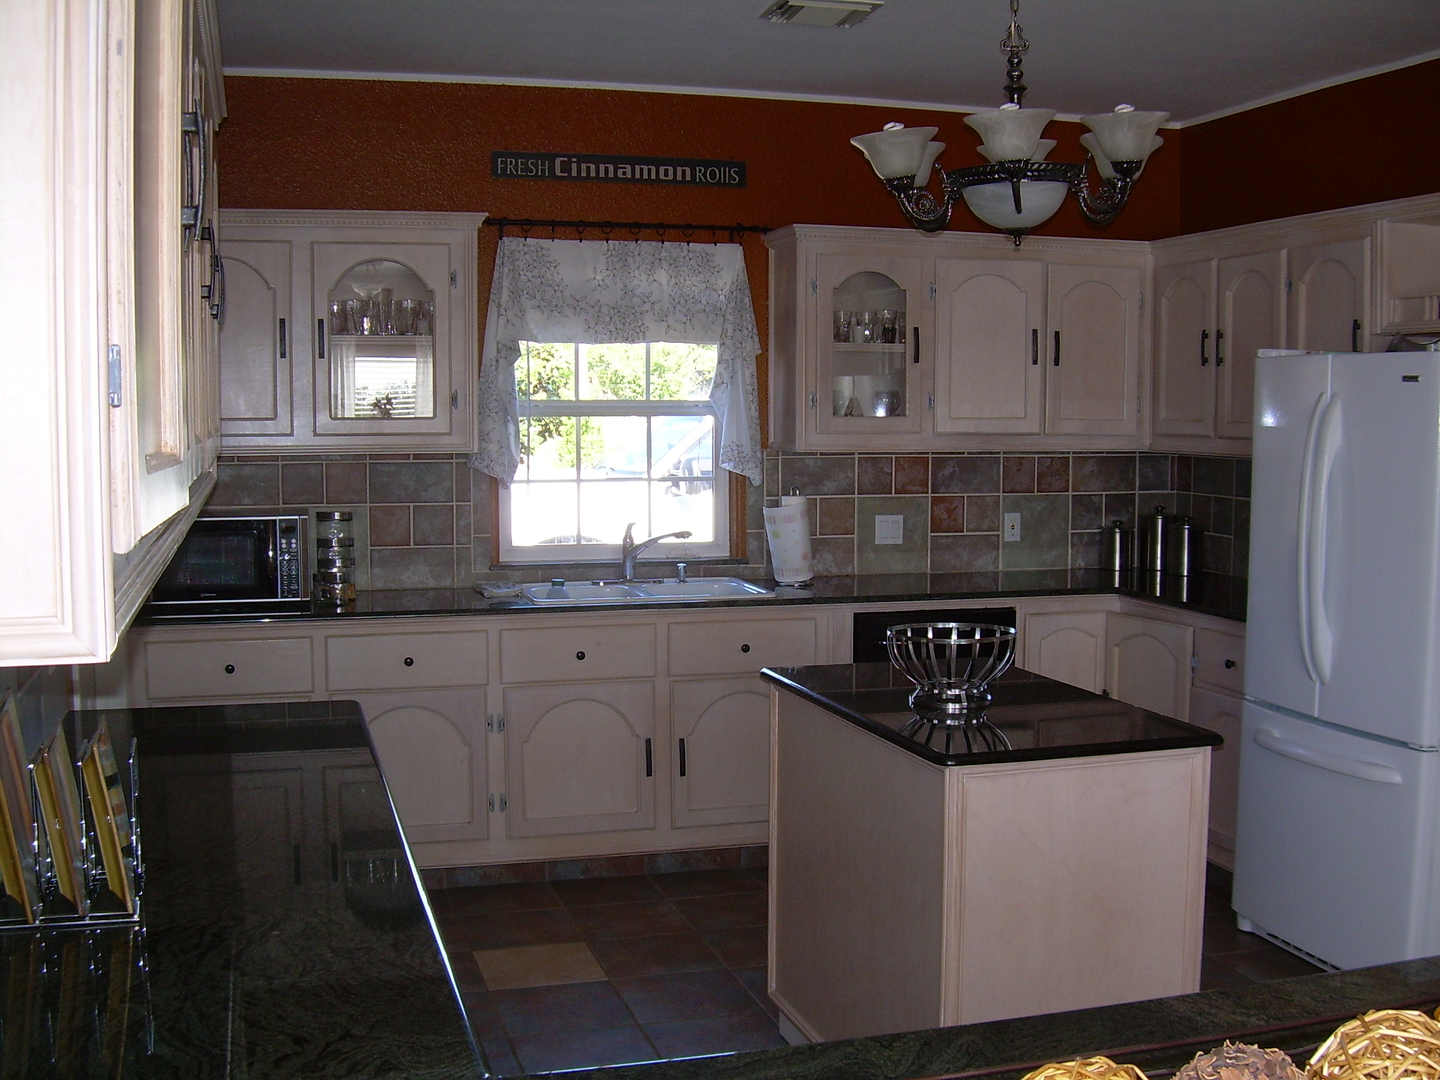 Residential Kitchen  Bath Remodel Or Retail Austin Kitchen  Bath - Bathroom remodeling austin texas